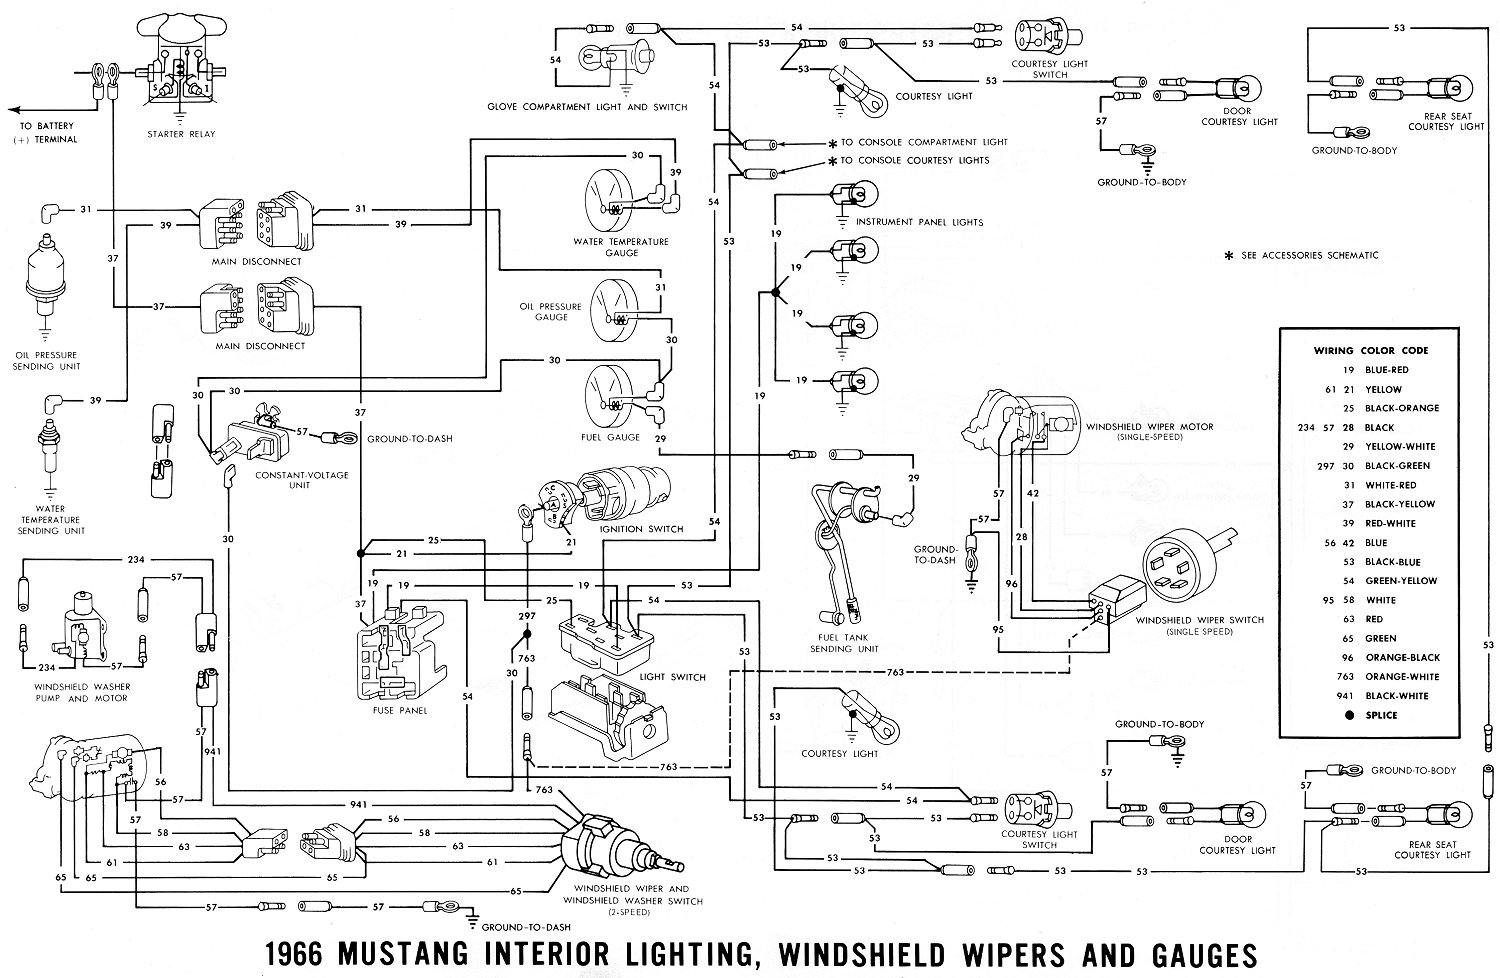 66inter1 66 mustang wiring diagram radio tape 66 mustang fuse diagram 1970 mustang radio wiring diagram at virtualis.co